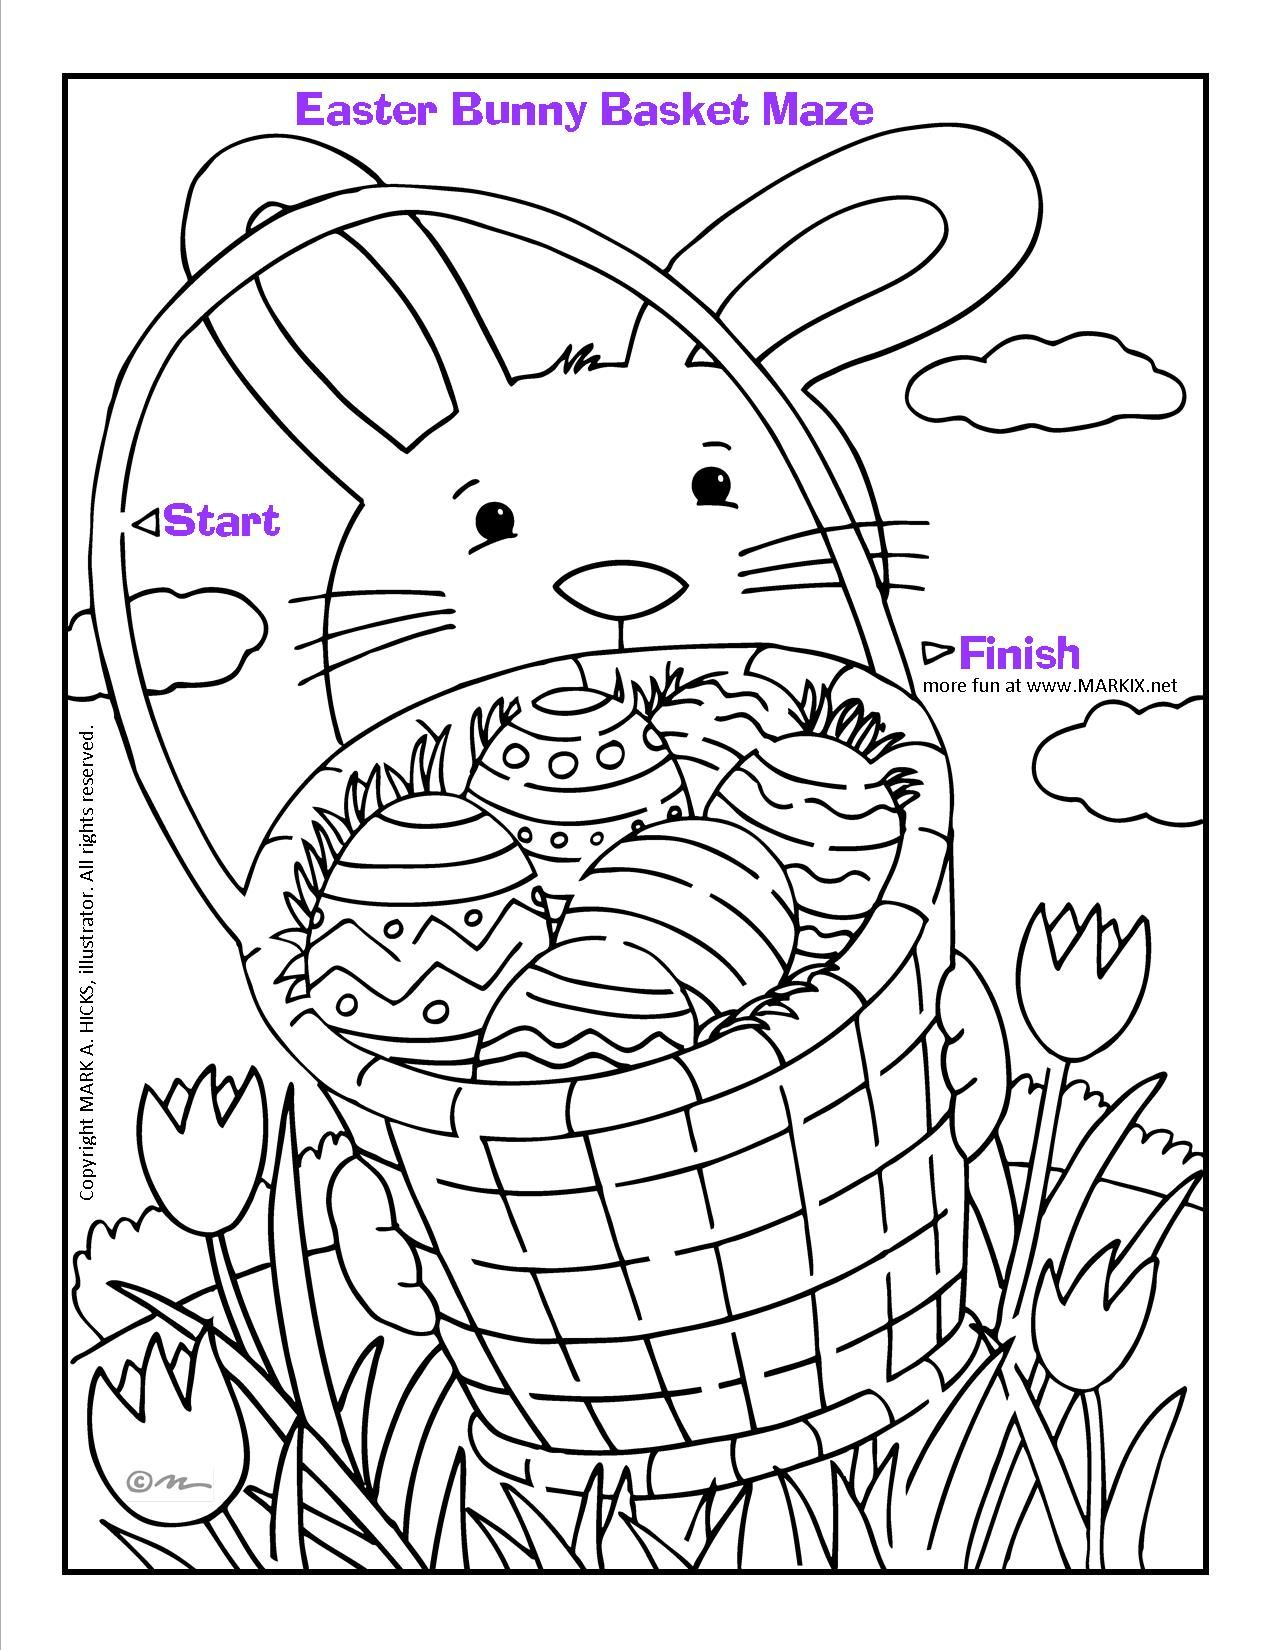 Easter Bunny Basket Maze and Coloring Page | Fun Printable Coloring ...